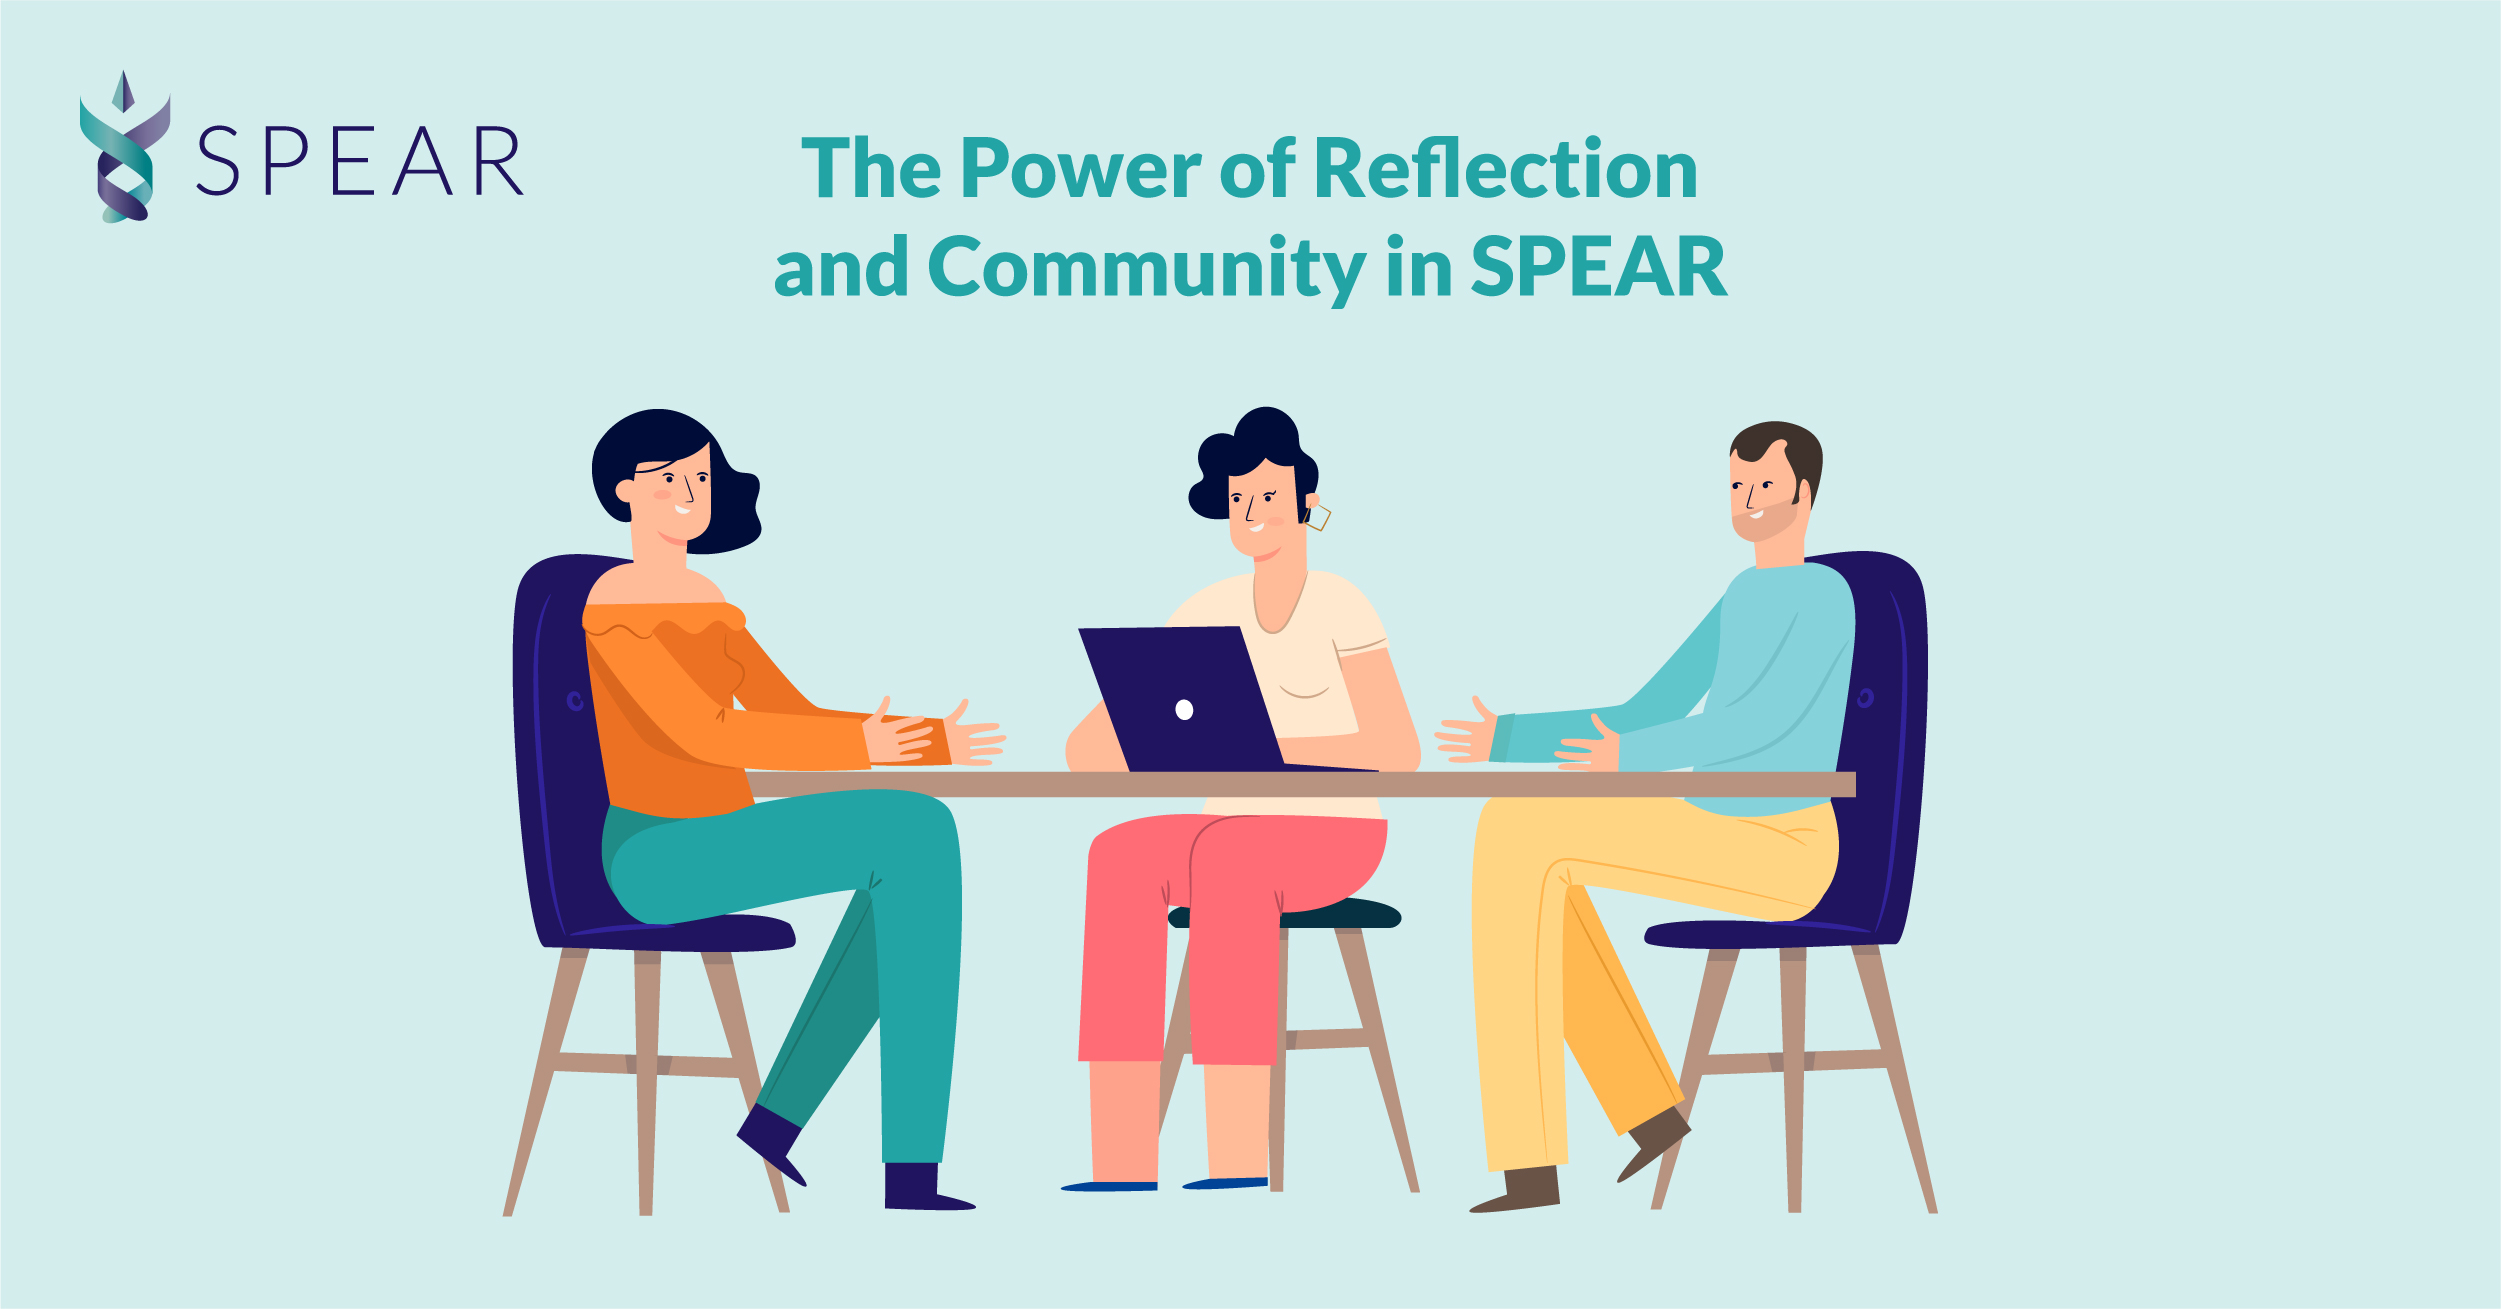 The Power of Reflection and Community in SPEAR